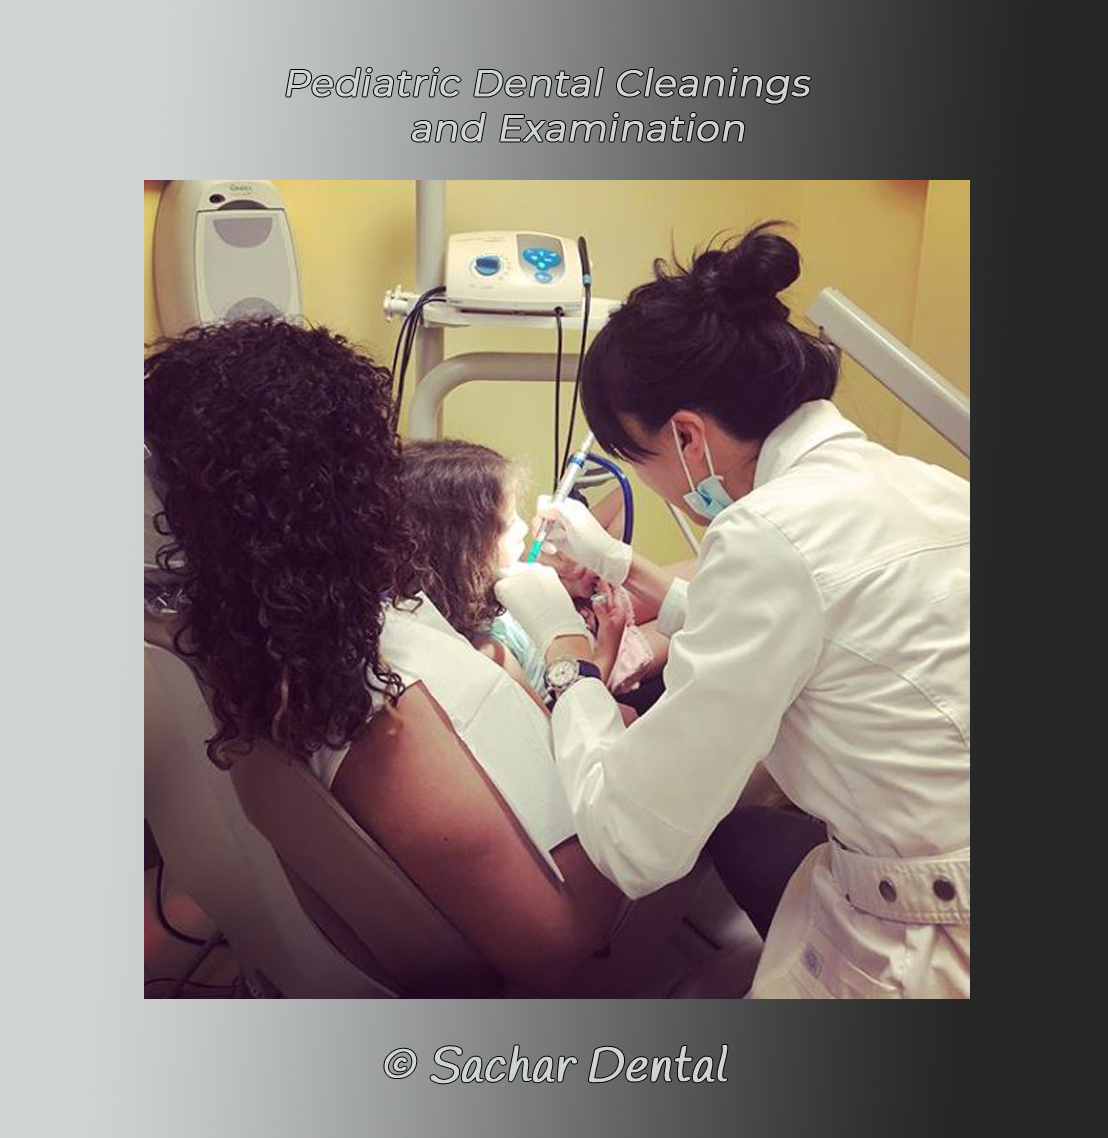 Picture of Dr. Wong doing a dental examination for little girl, pediatric patient while she sits on her mom's lap